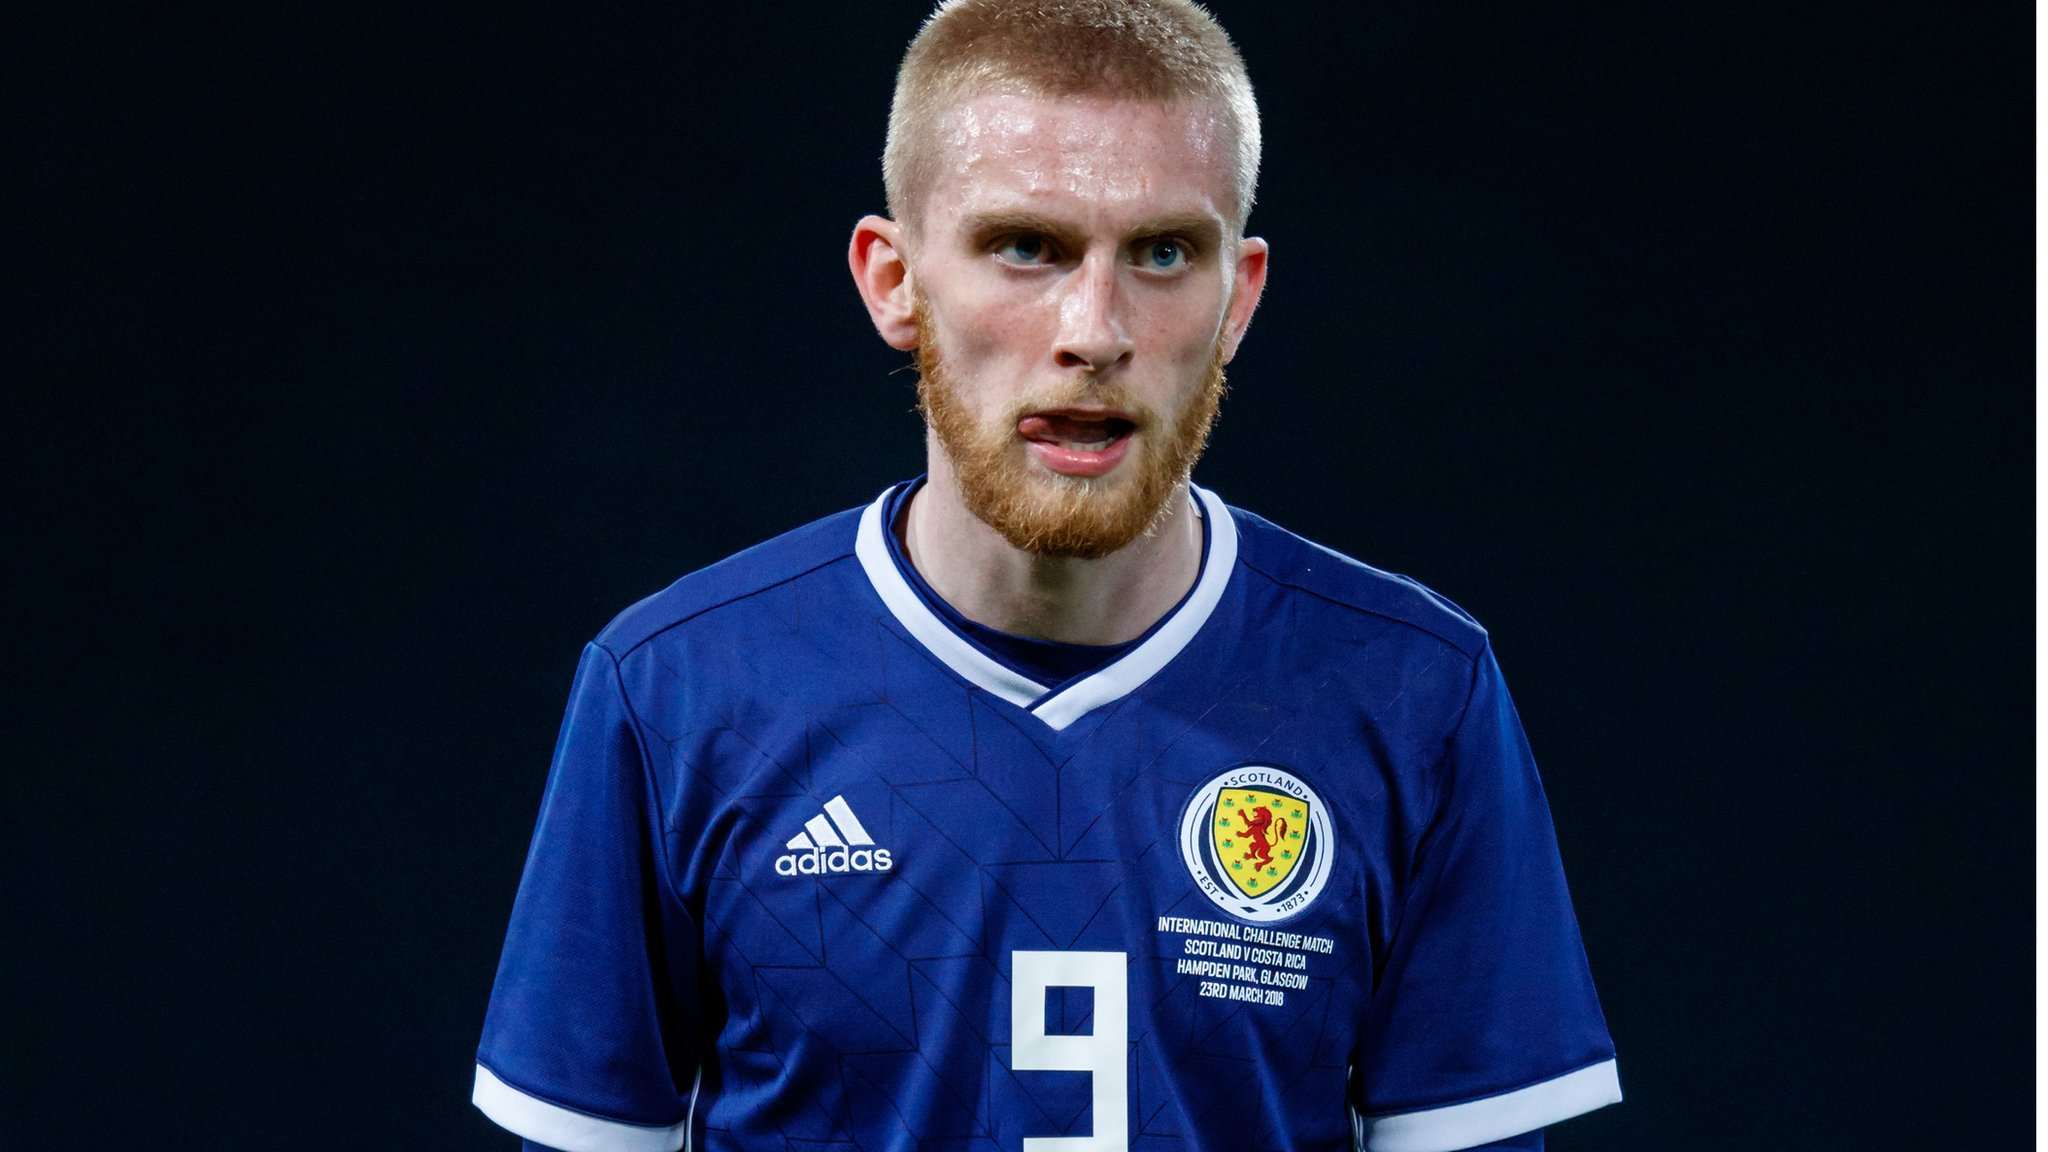 'I want to be Scotland's number nine' - McBurnie